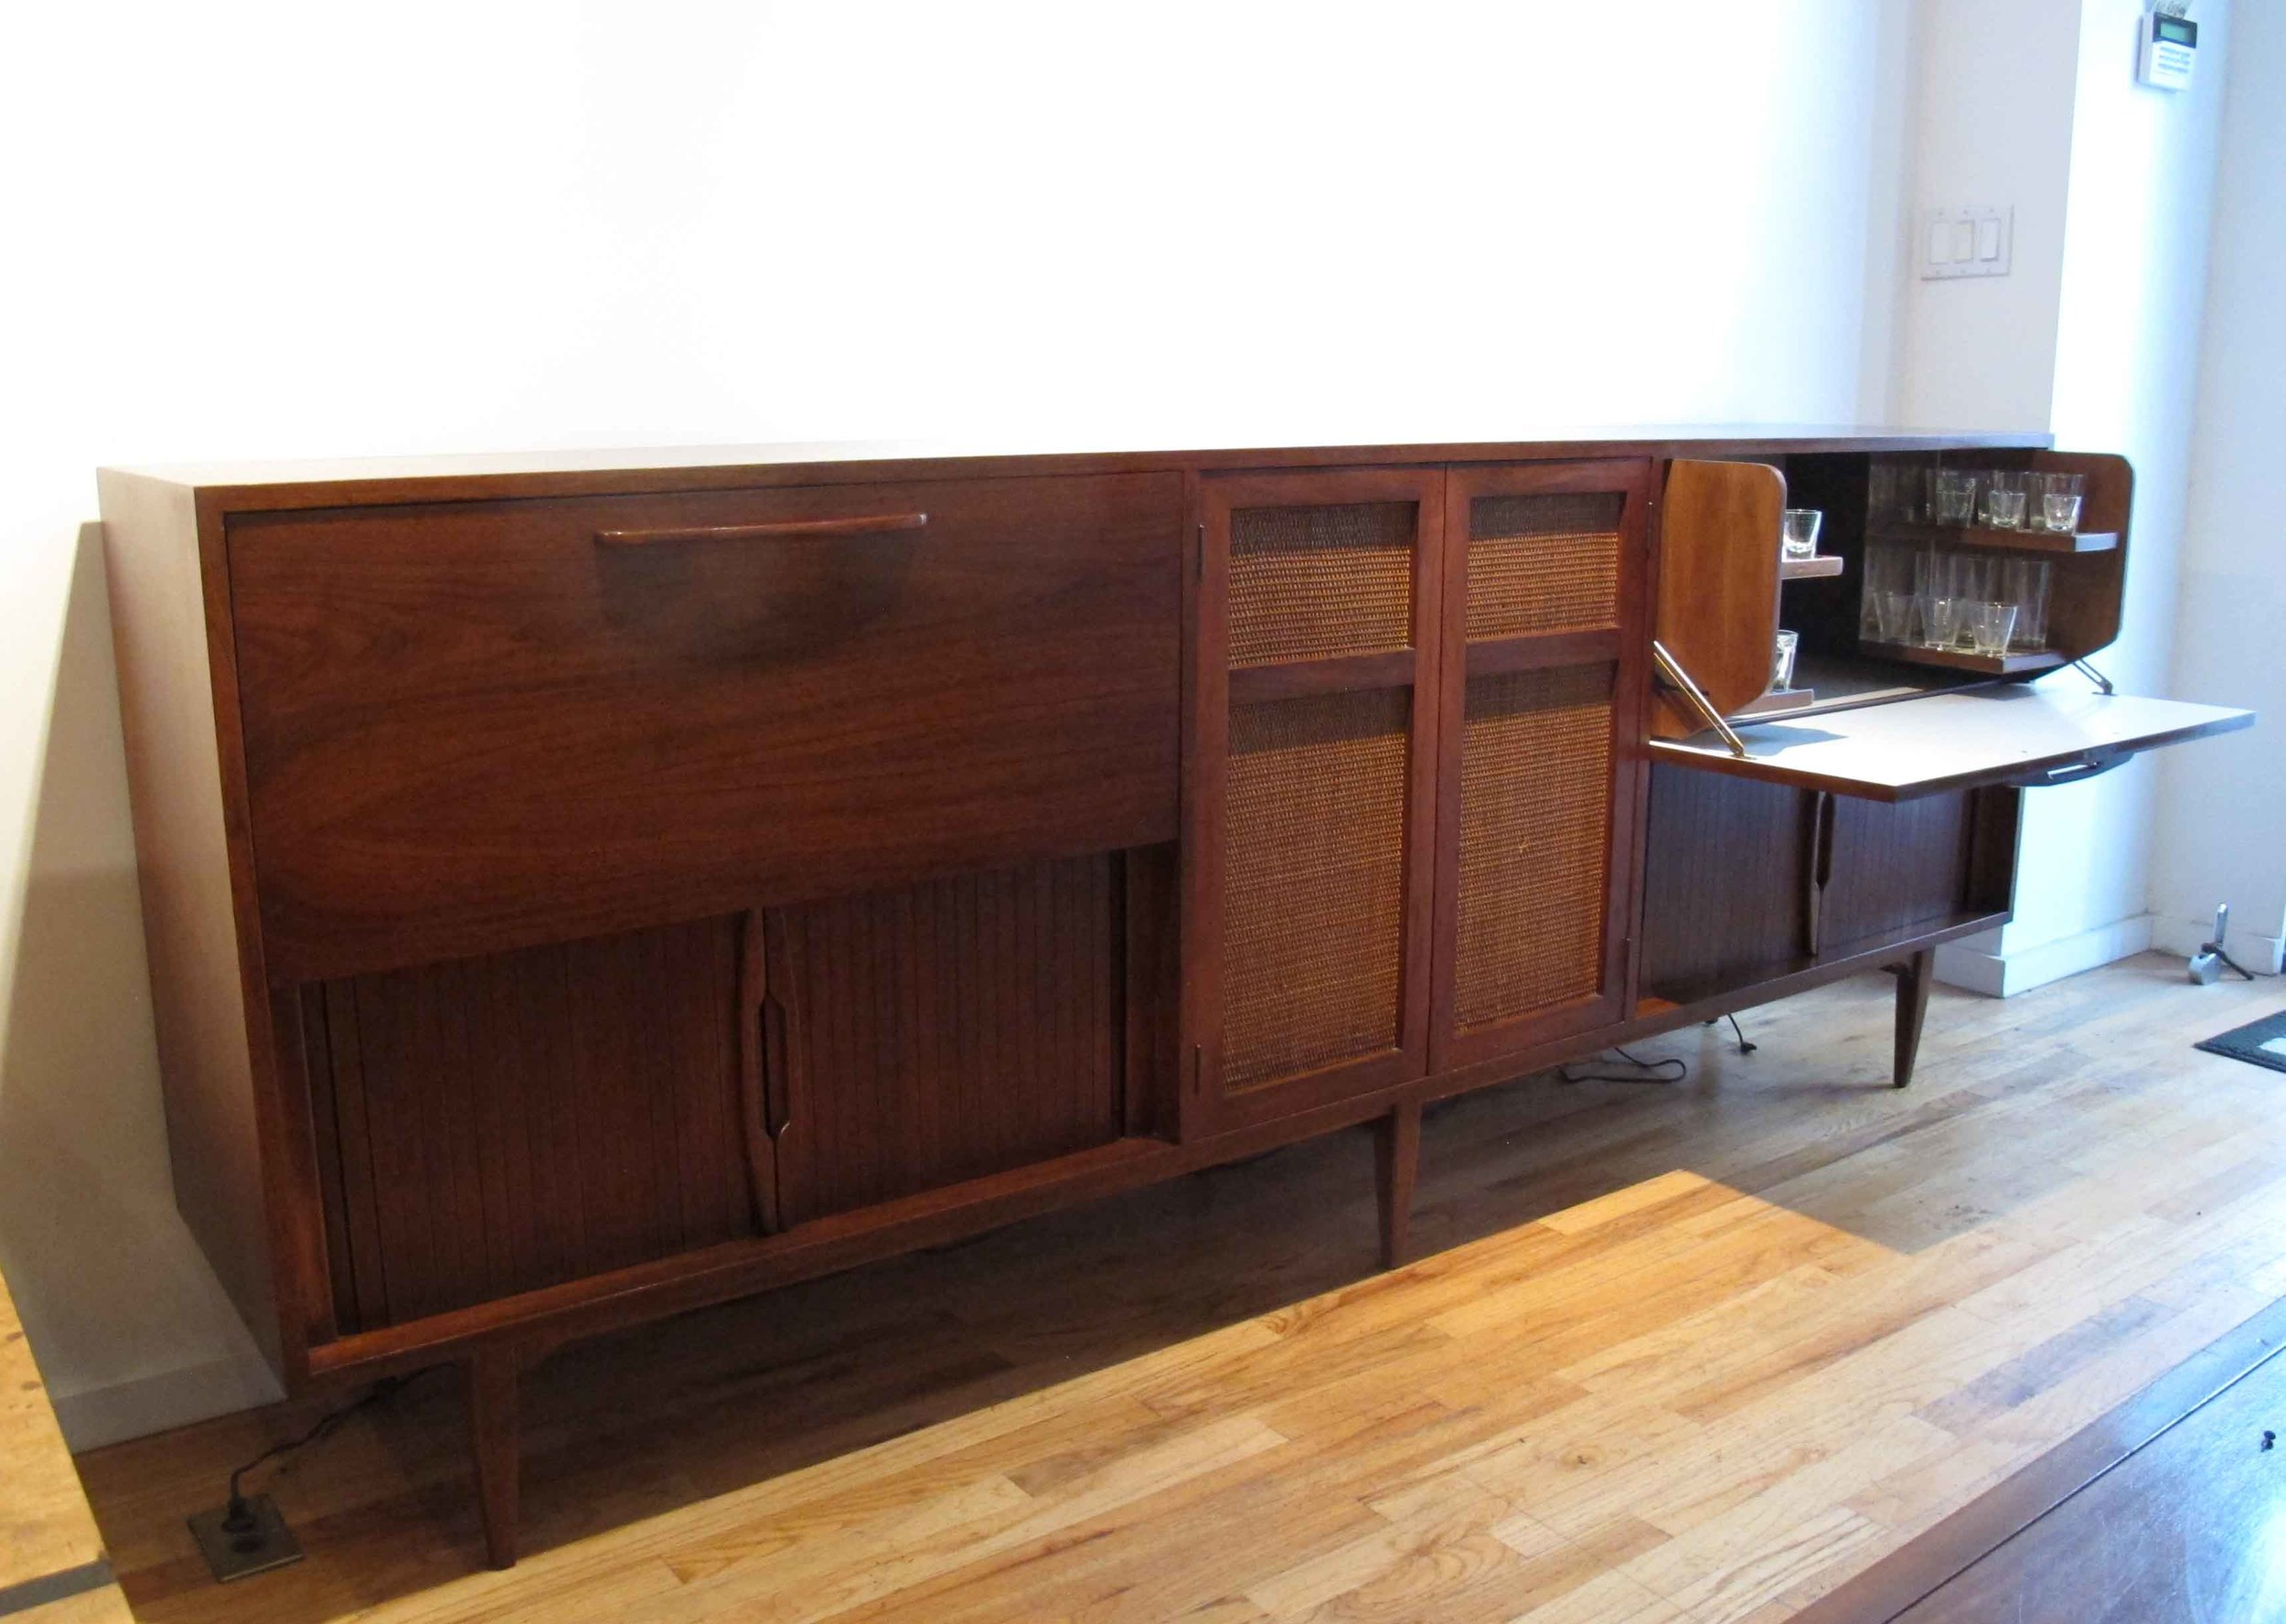 MID CENTURY WALNUT HIFI RECORD & BAR CABINET WITH GLASSWAR